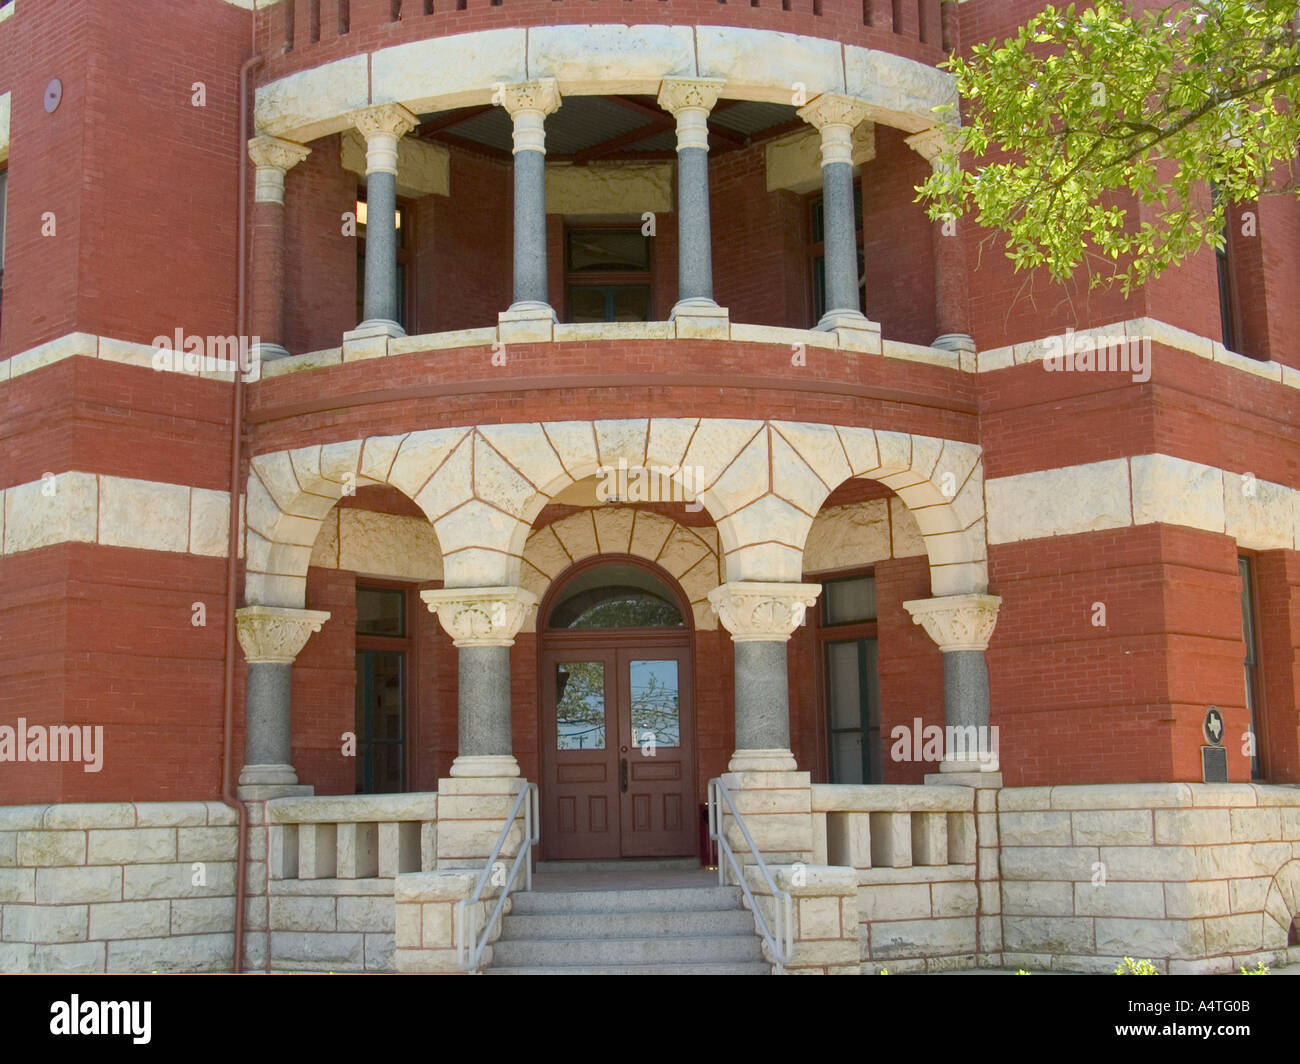 Lee County Courthouse Entrance Giddings Texas Detail view of Romanesque octagonal structure built in 1899 - Stock Image